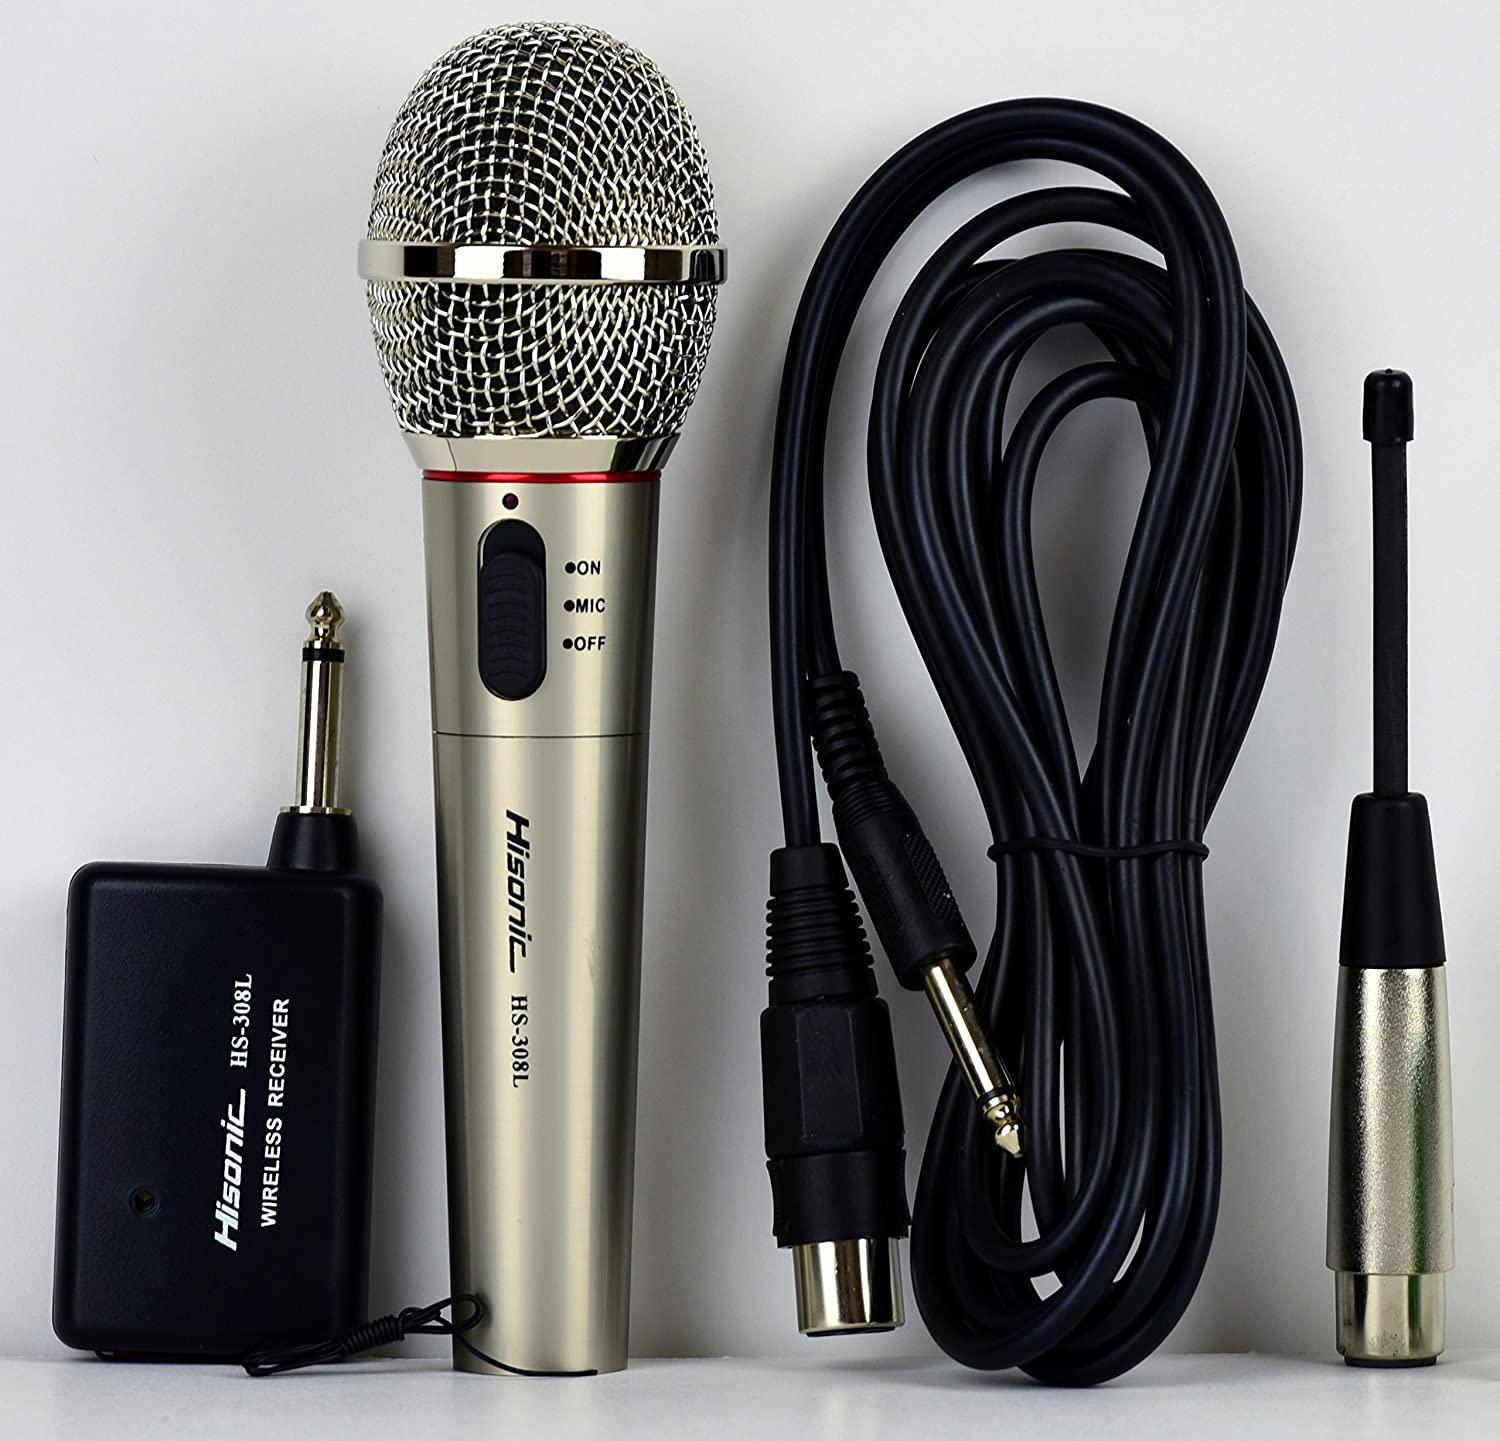 Hisonic HS308L Portable Wireless and Wired 2 in 1 Microphone for Home and Stage Use